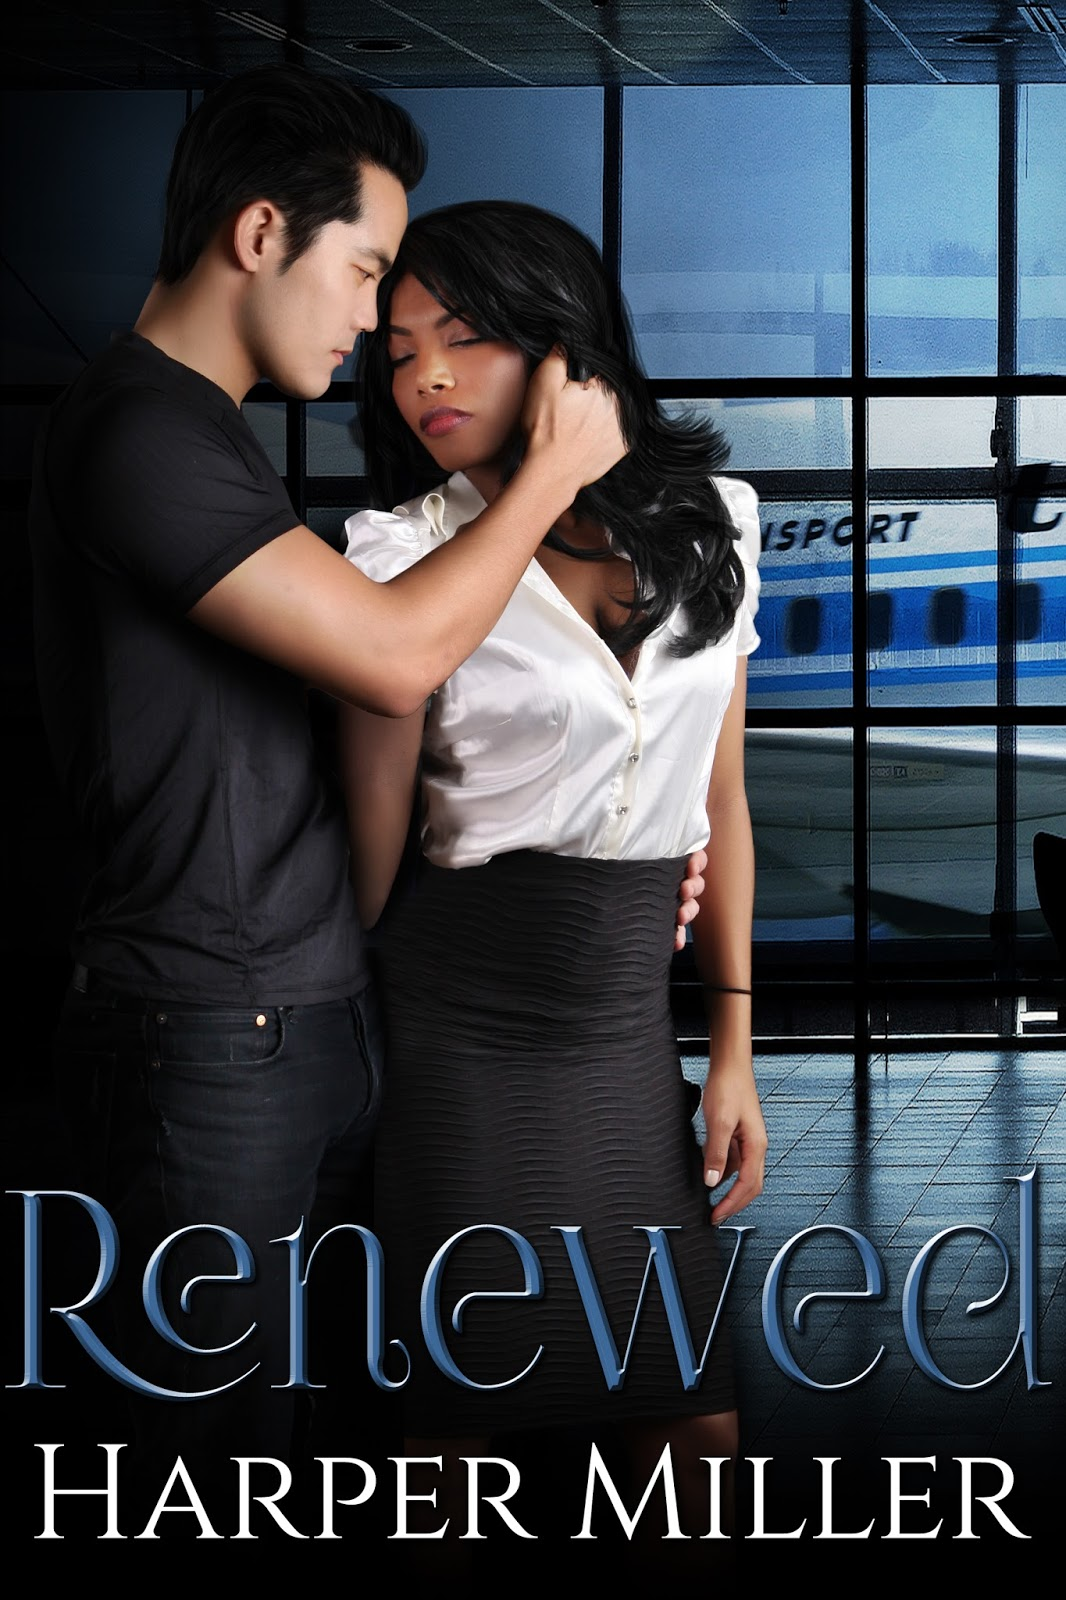 Assured, Interracial erotic romance exactly would